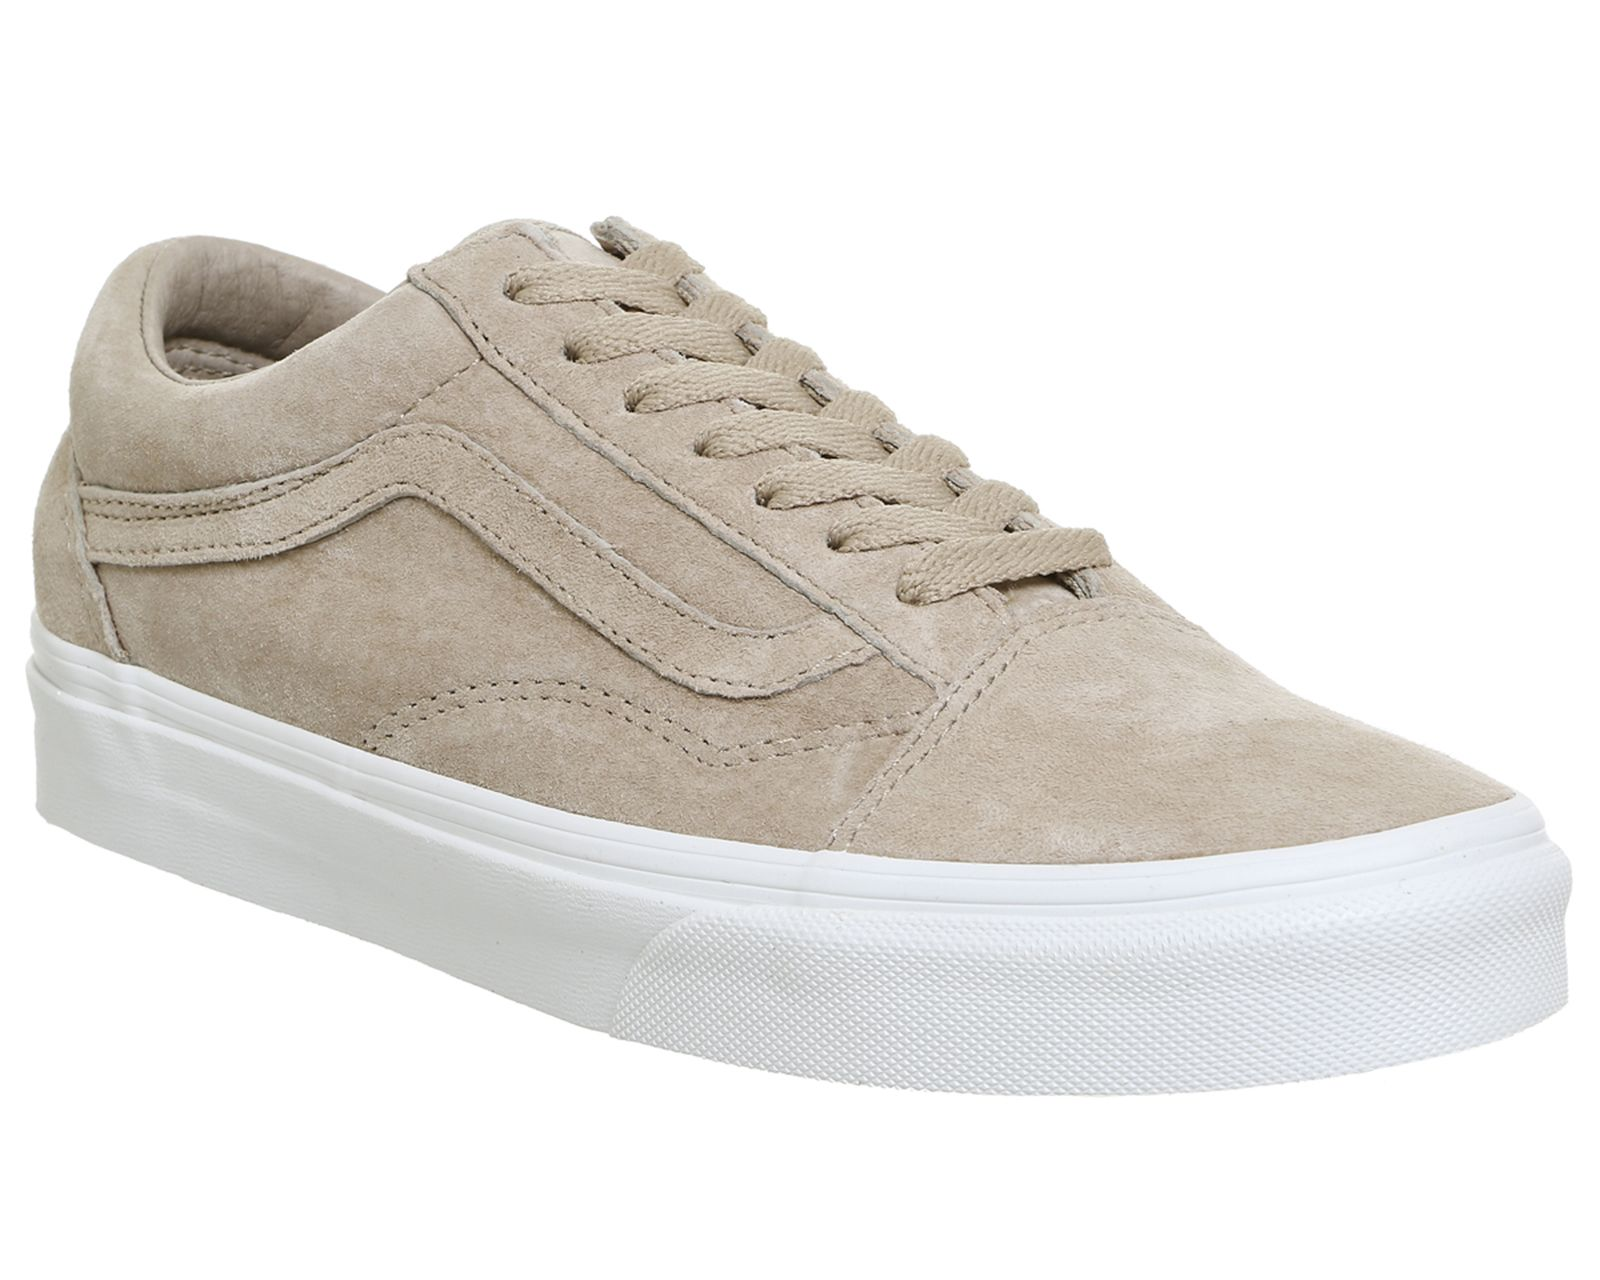 Chaussures Vans Old Skool beiges Fashion unisexe oSYOLfe